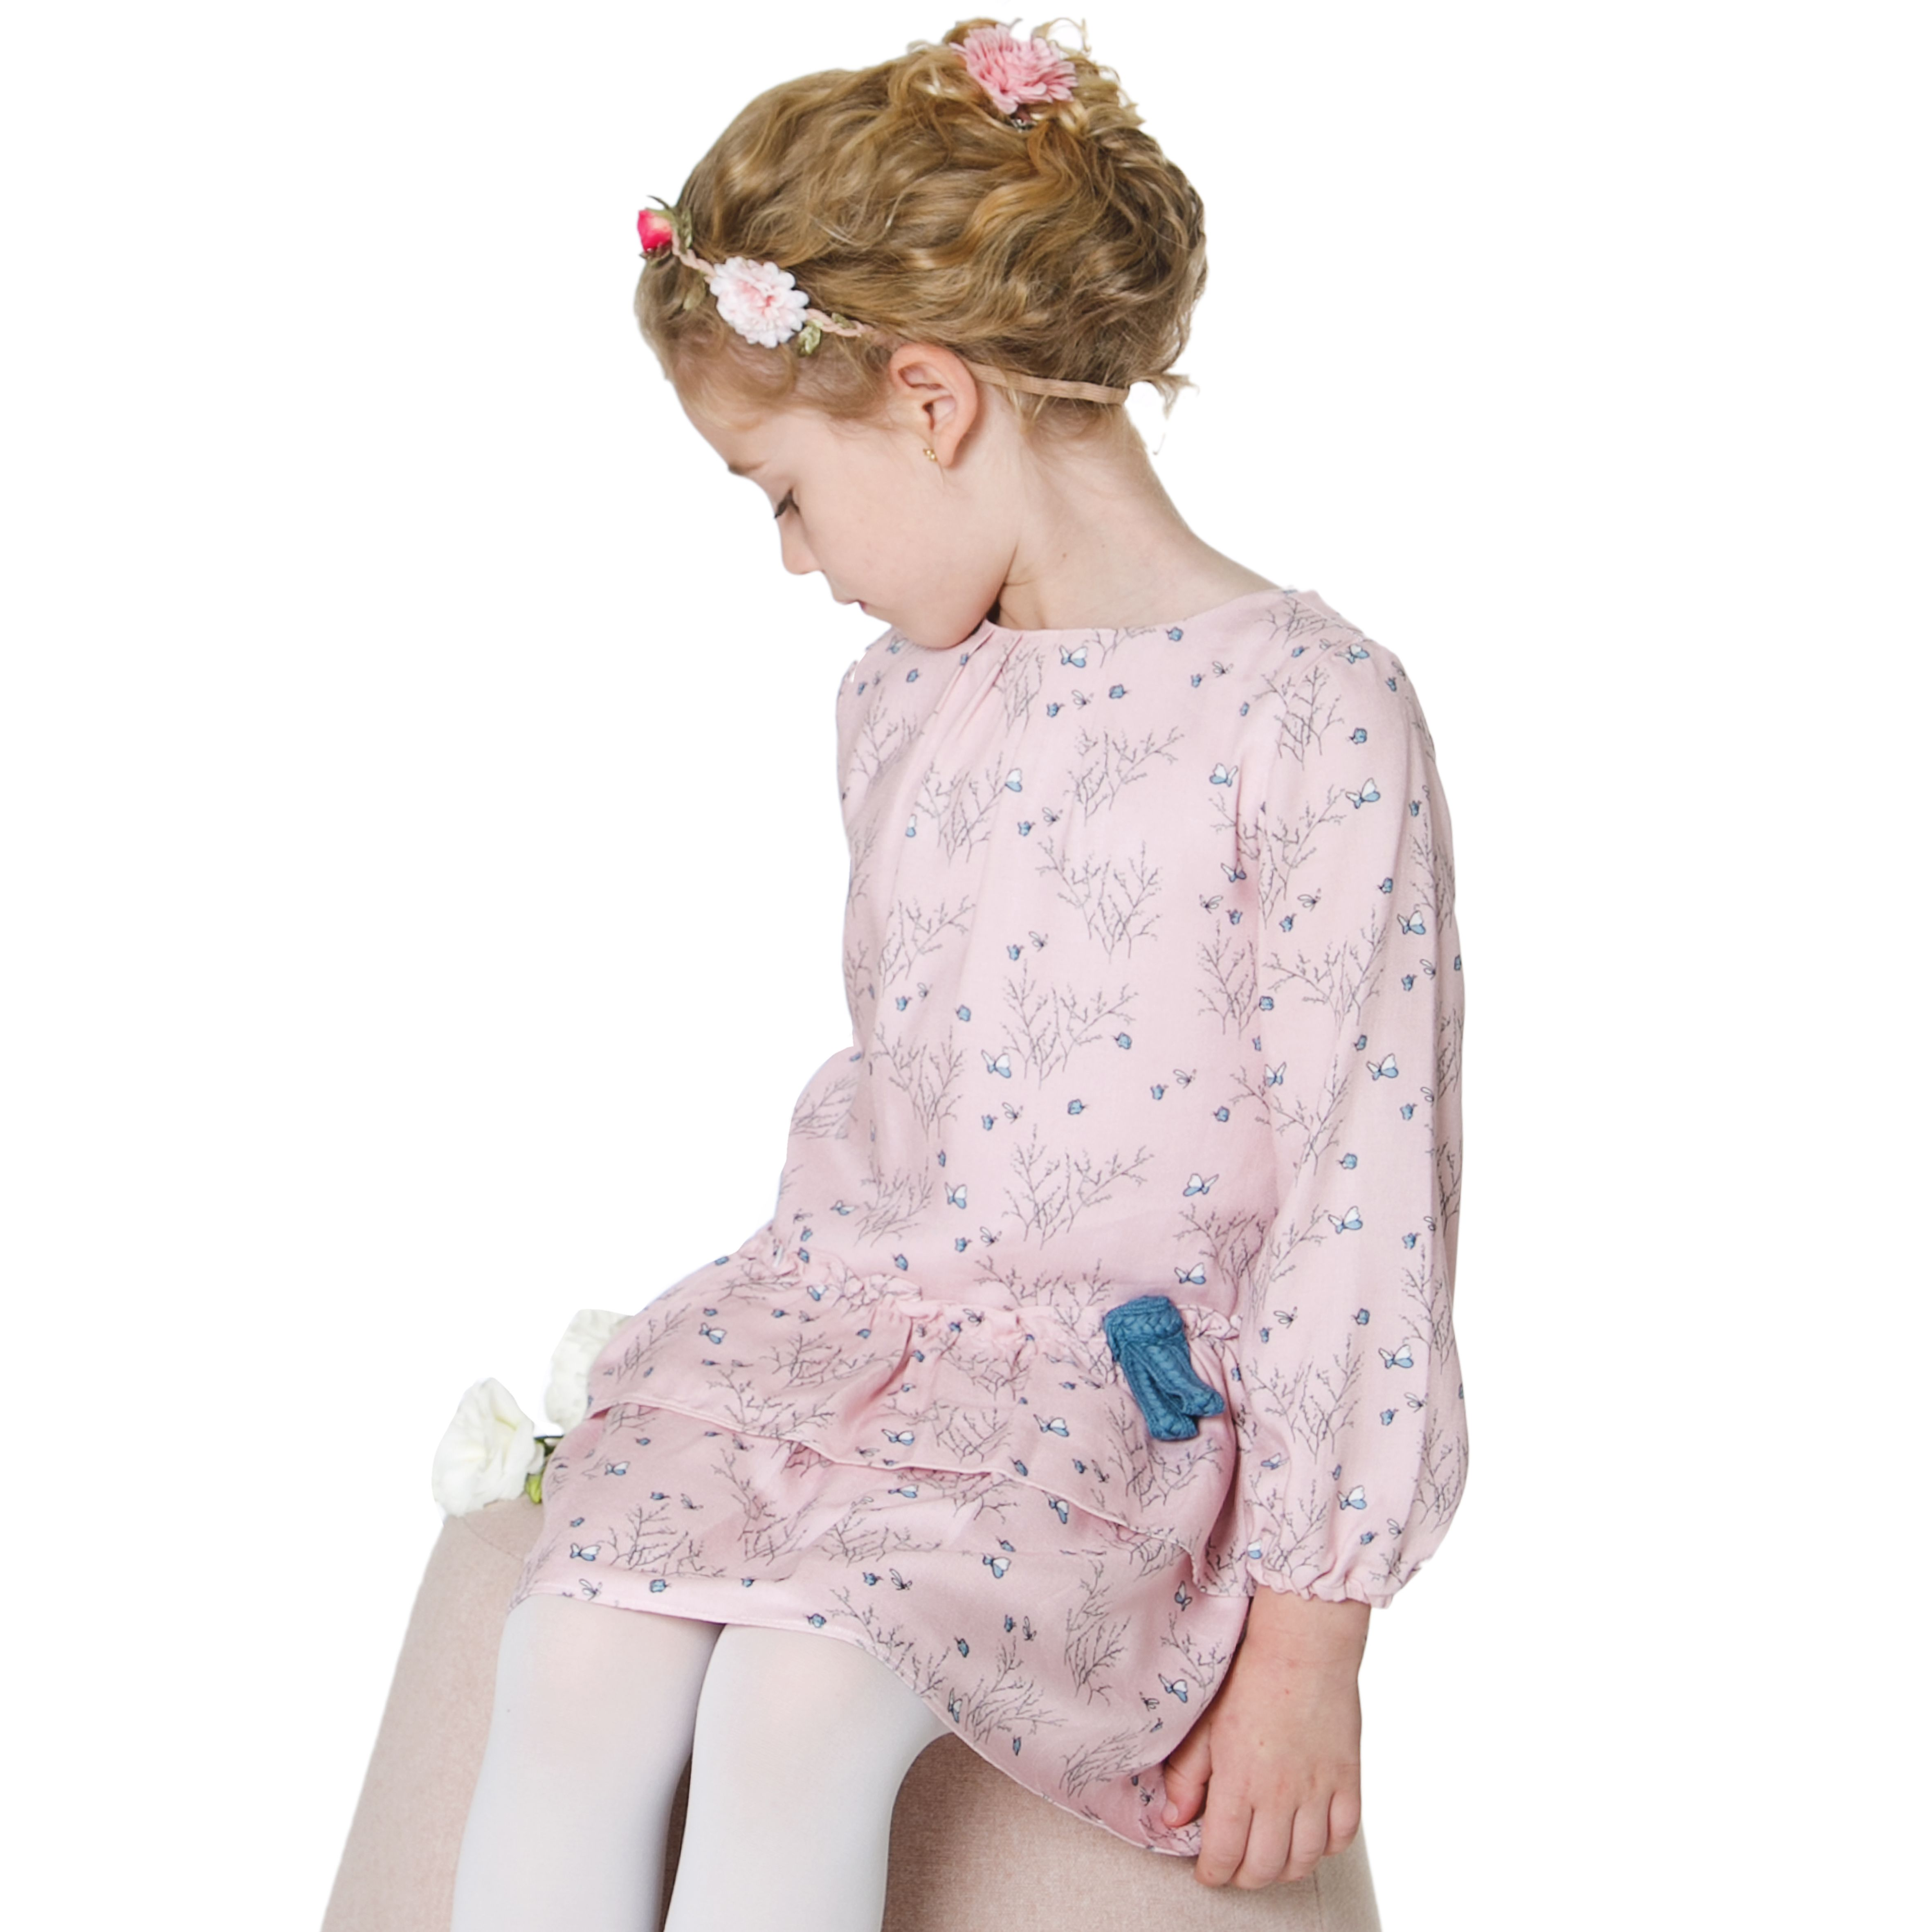 Pink floral dress super soft stylish and practical kids fashion